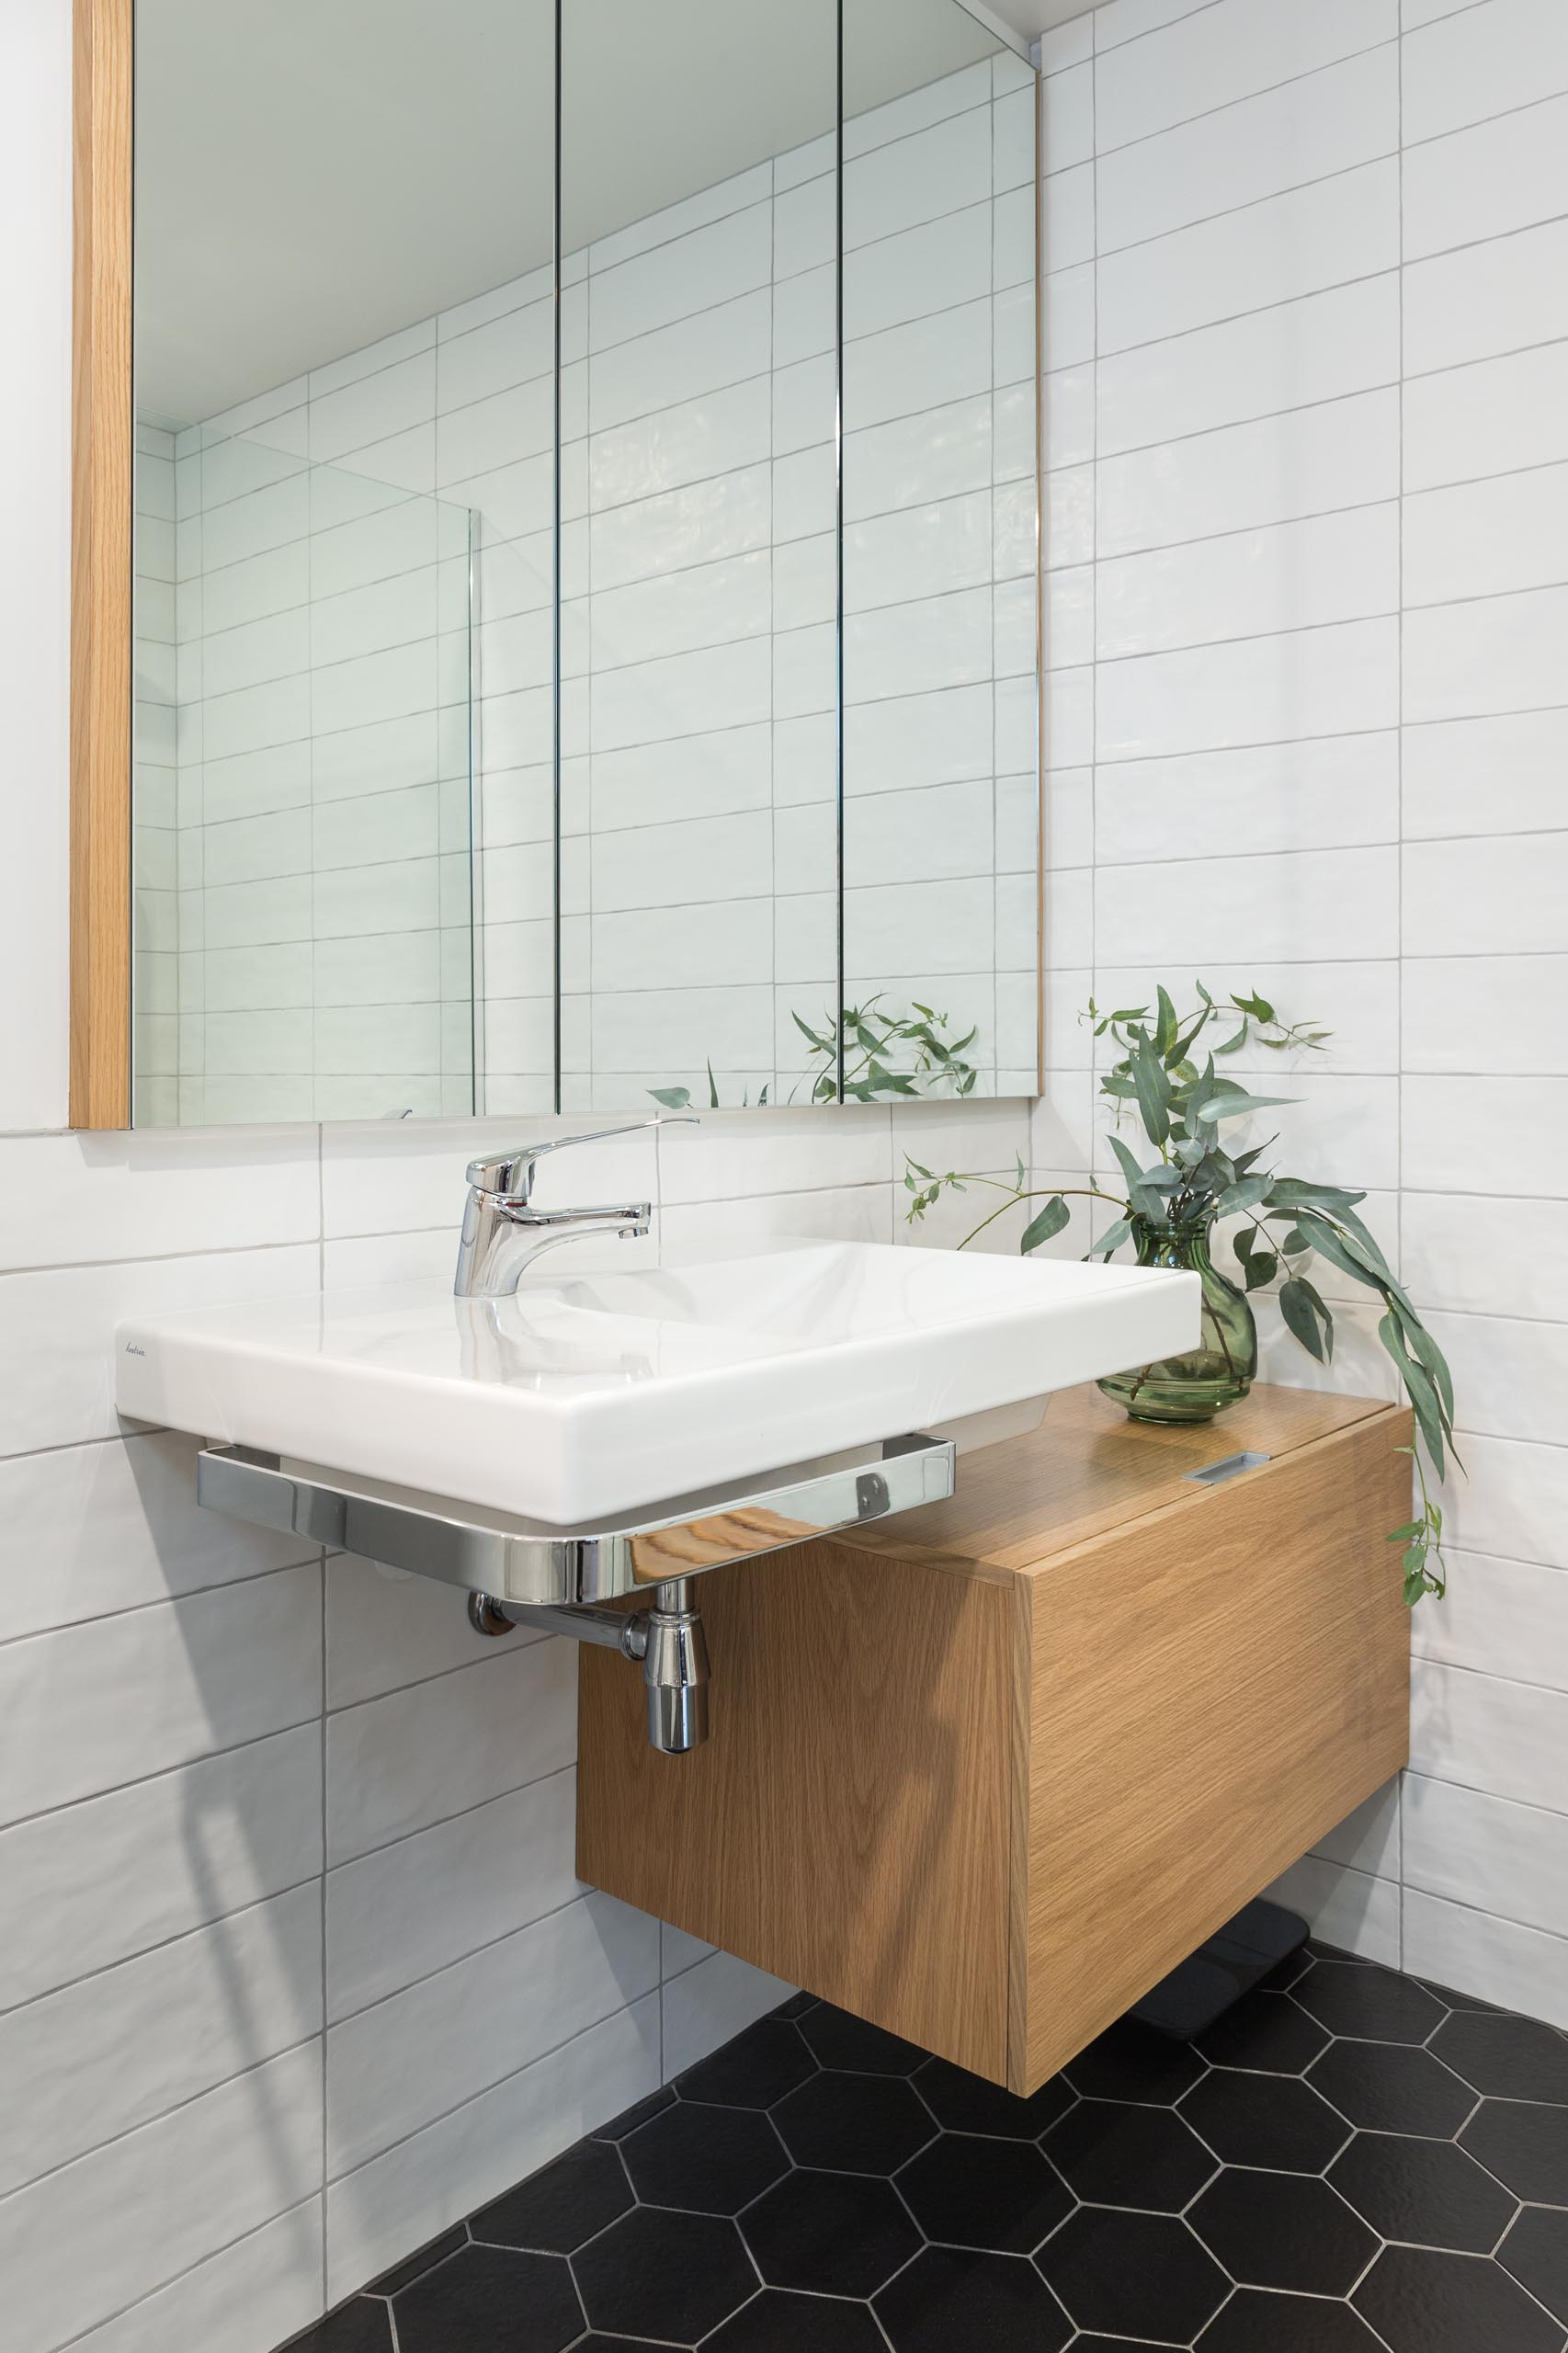 In this modern bathroom, there's black hexagon tiles on the floor and white rectangular tiles on the walls.